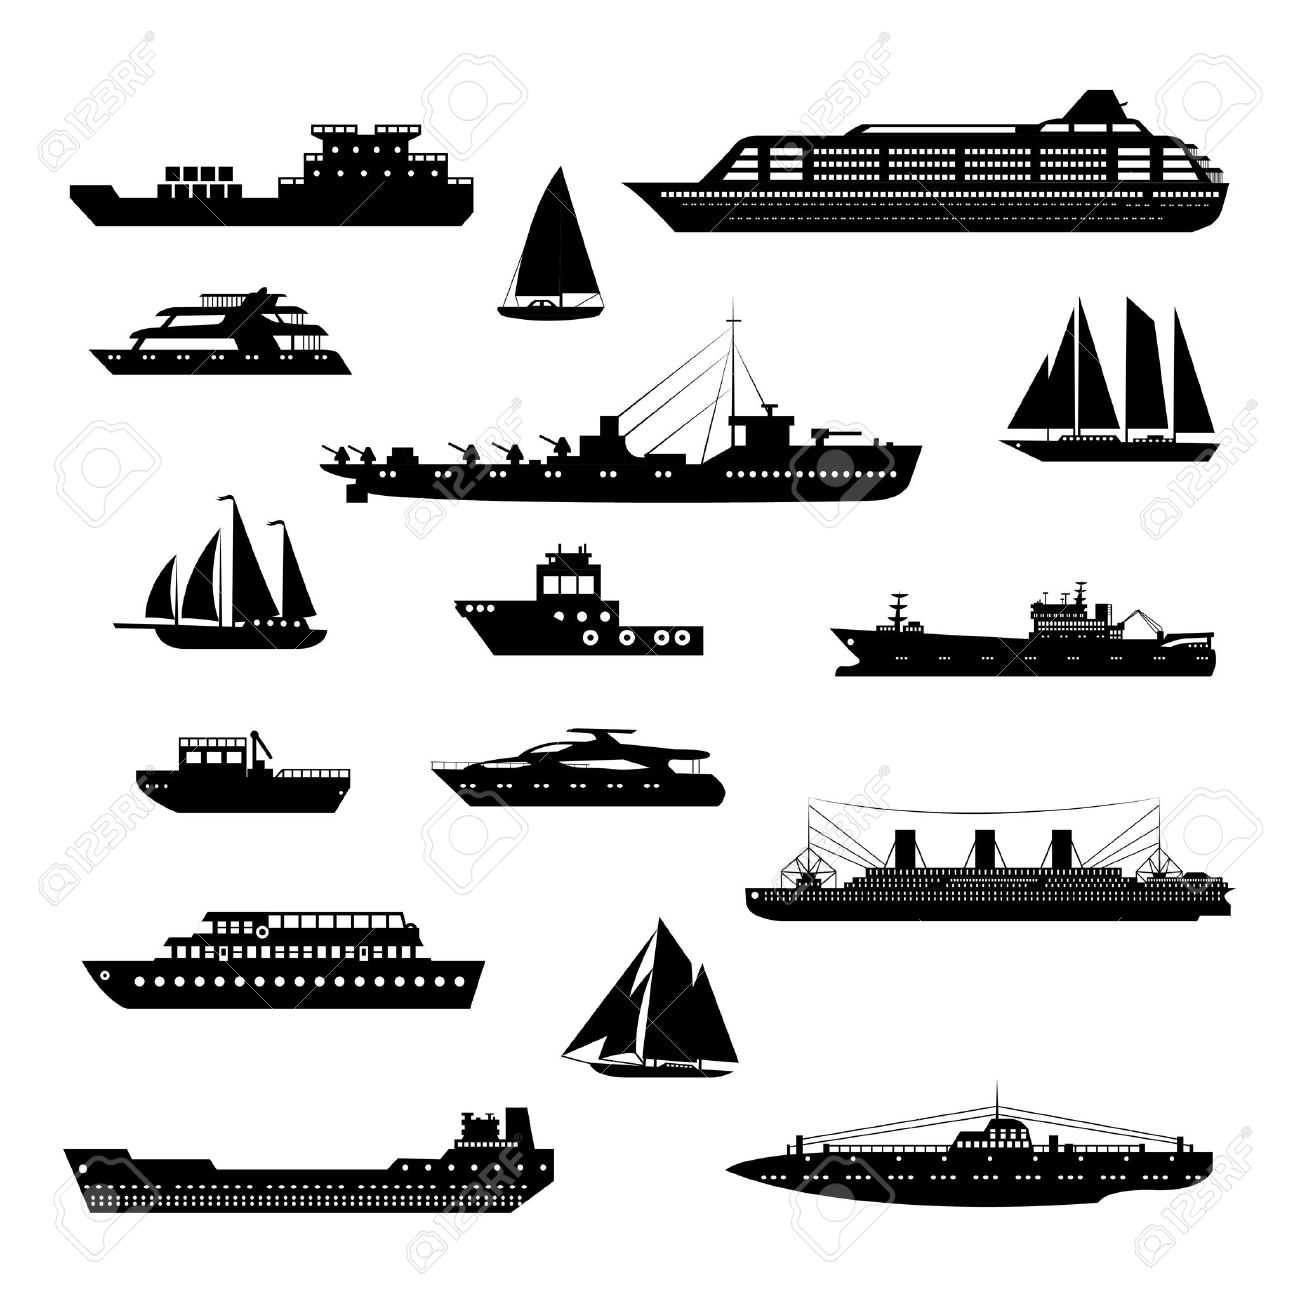 ships and boats steamboat yacht and tanker freight industry